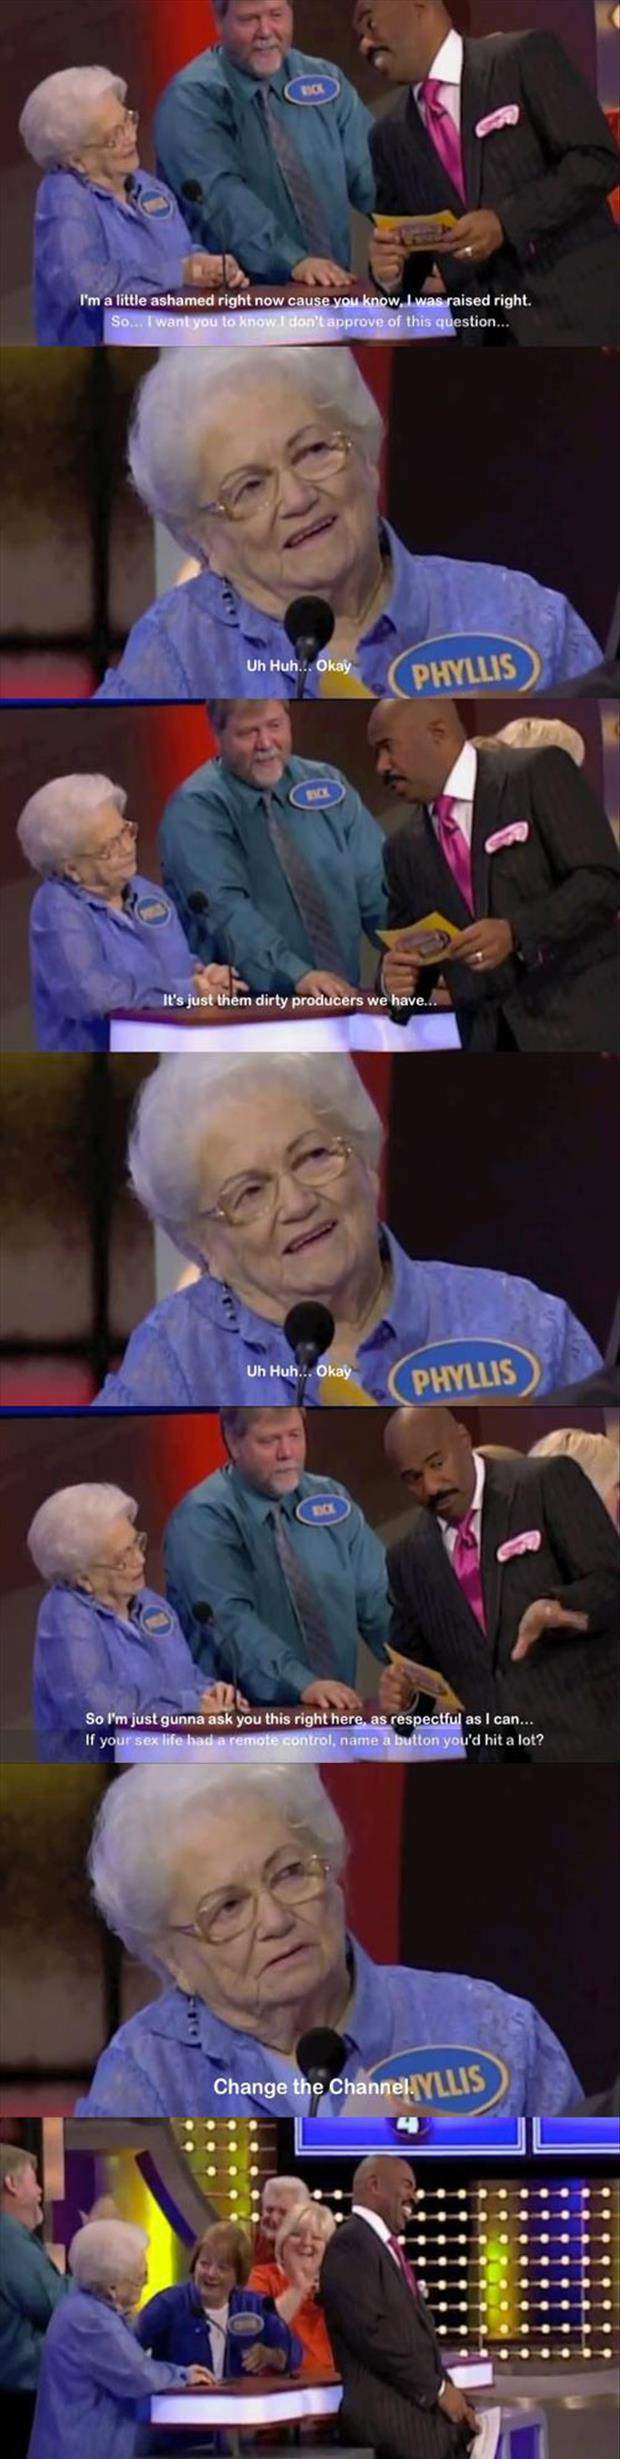 family fued questions funny